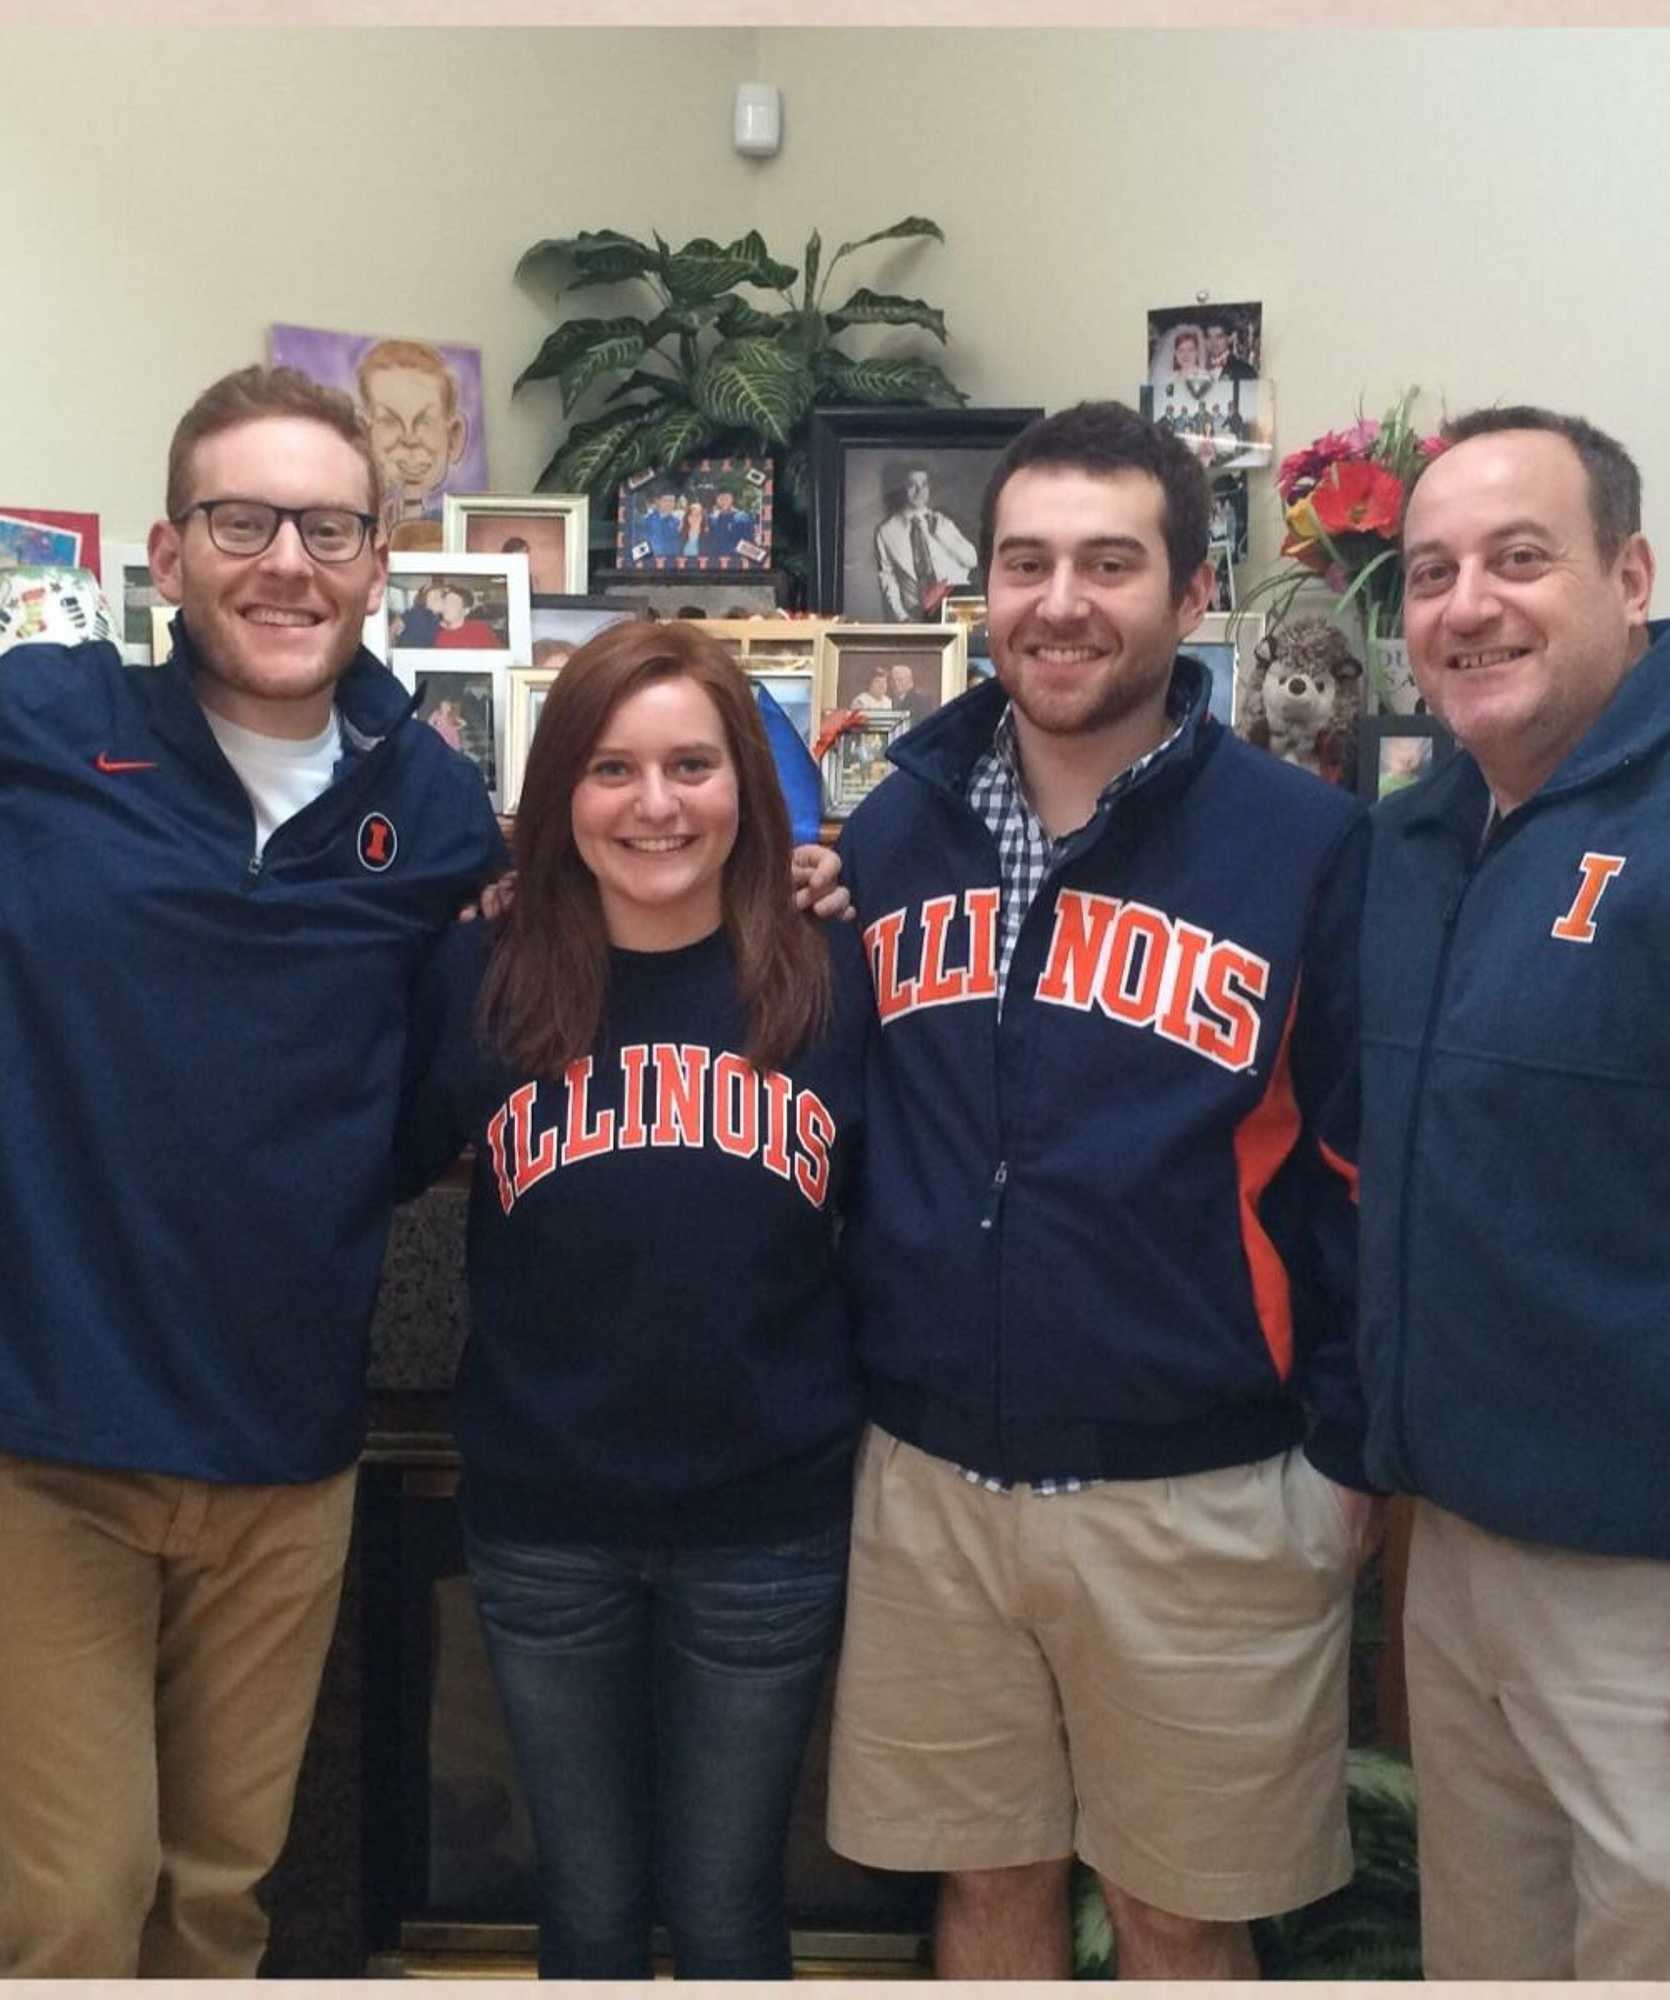 Delanie Steinweg (center left) comes from an Illini family. Her father, Ed (right), is a University alumnus, as well as her two brothers.